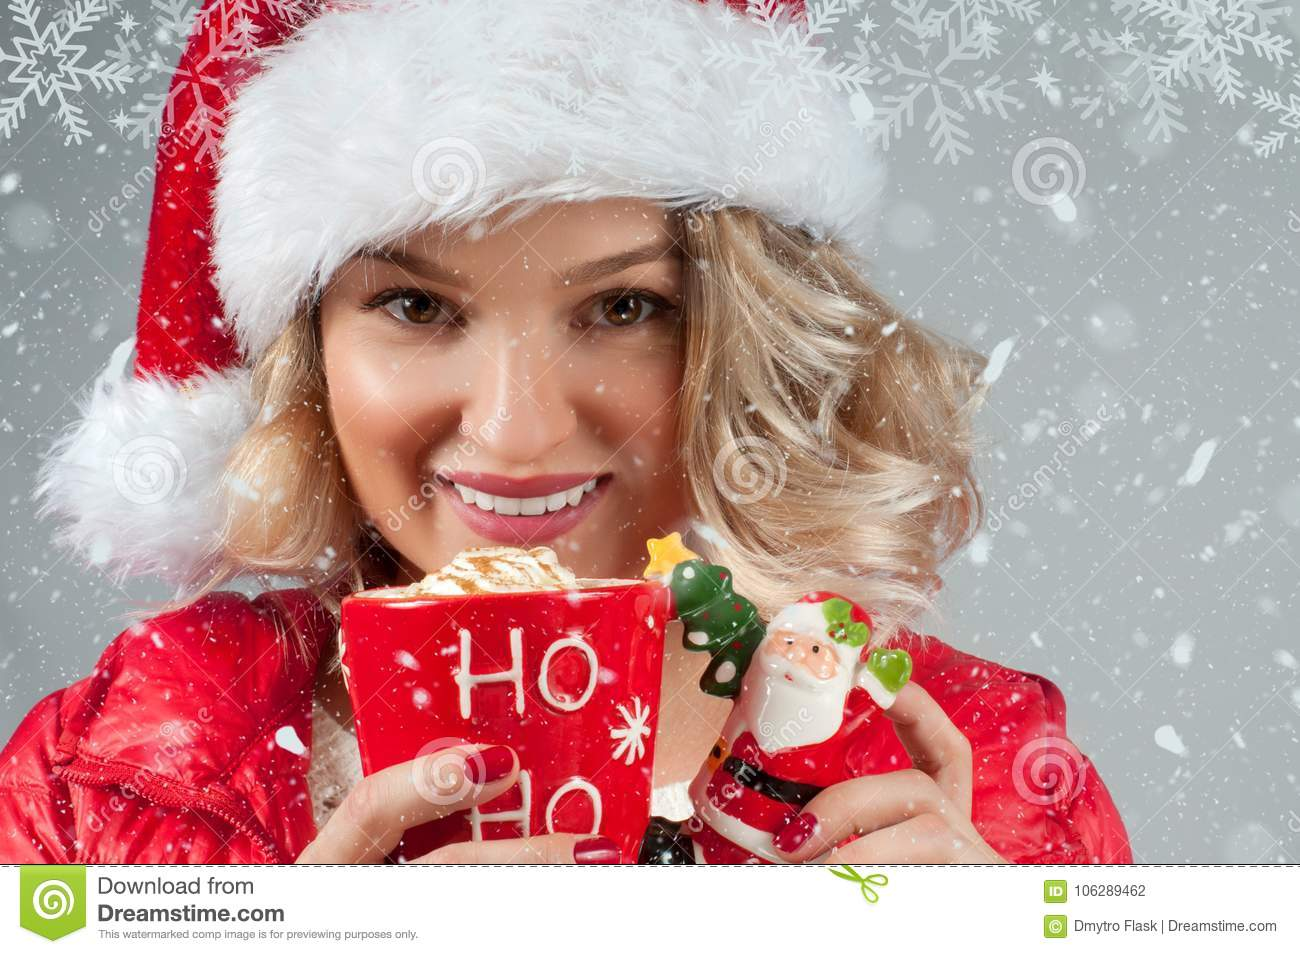 Beautiful Woman In Santas Hat Holding Cup Of Coffee Christmas Mood Winter And Snowflakes